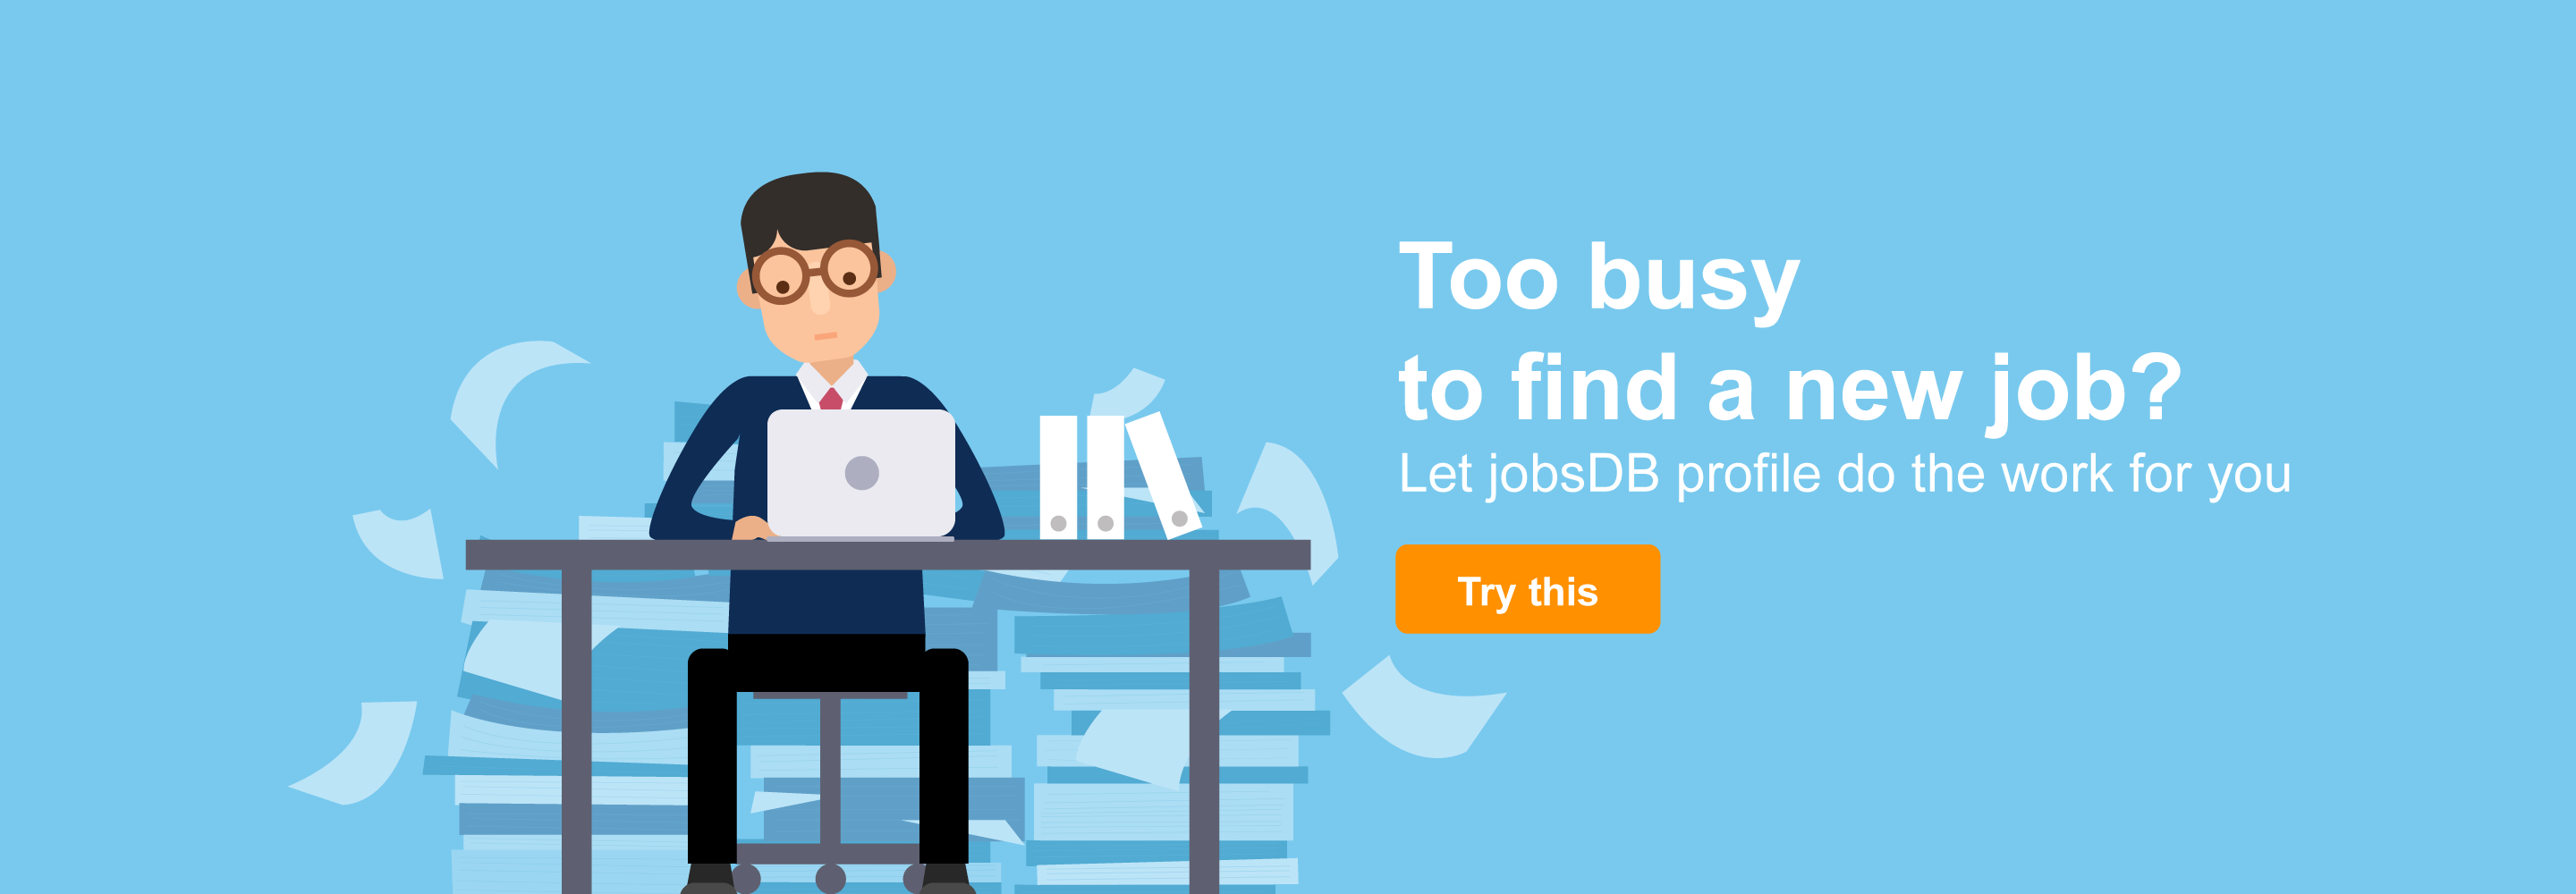 Too busy to find a new job?